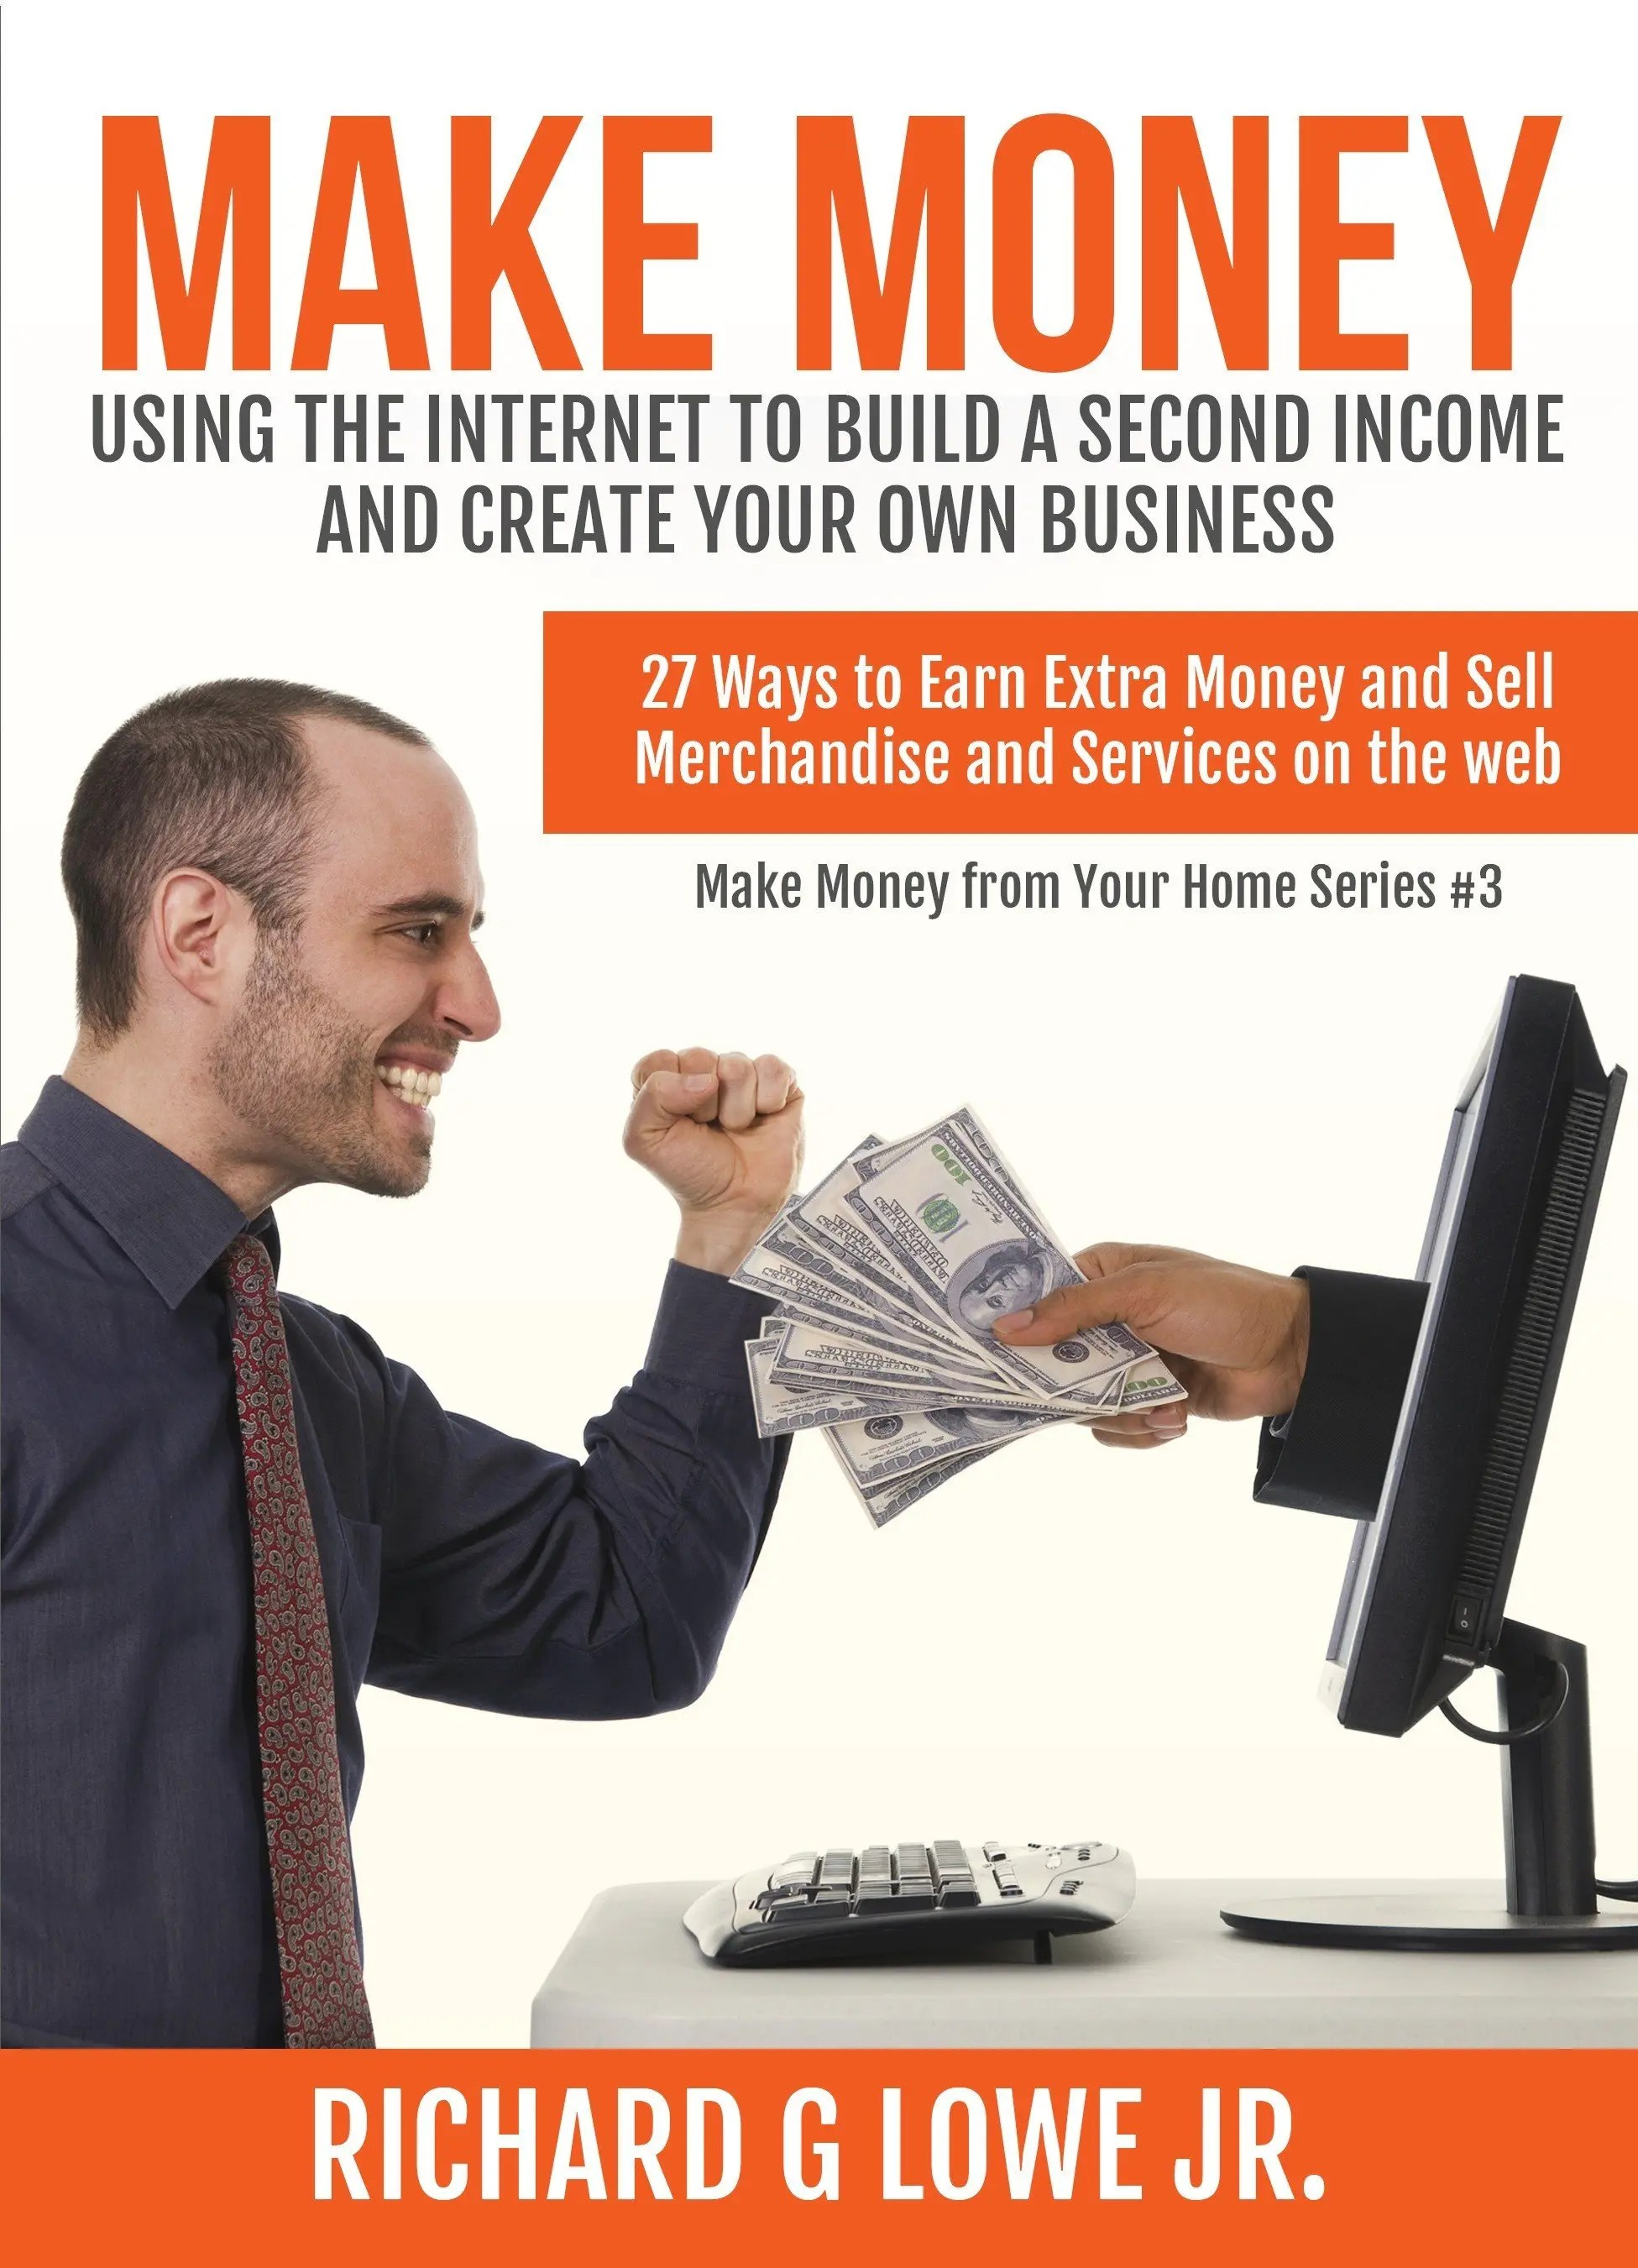 Make Money Using The Internet To Build A Second Income And